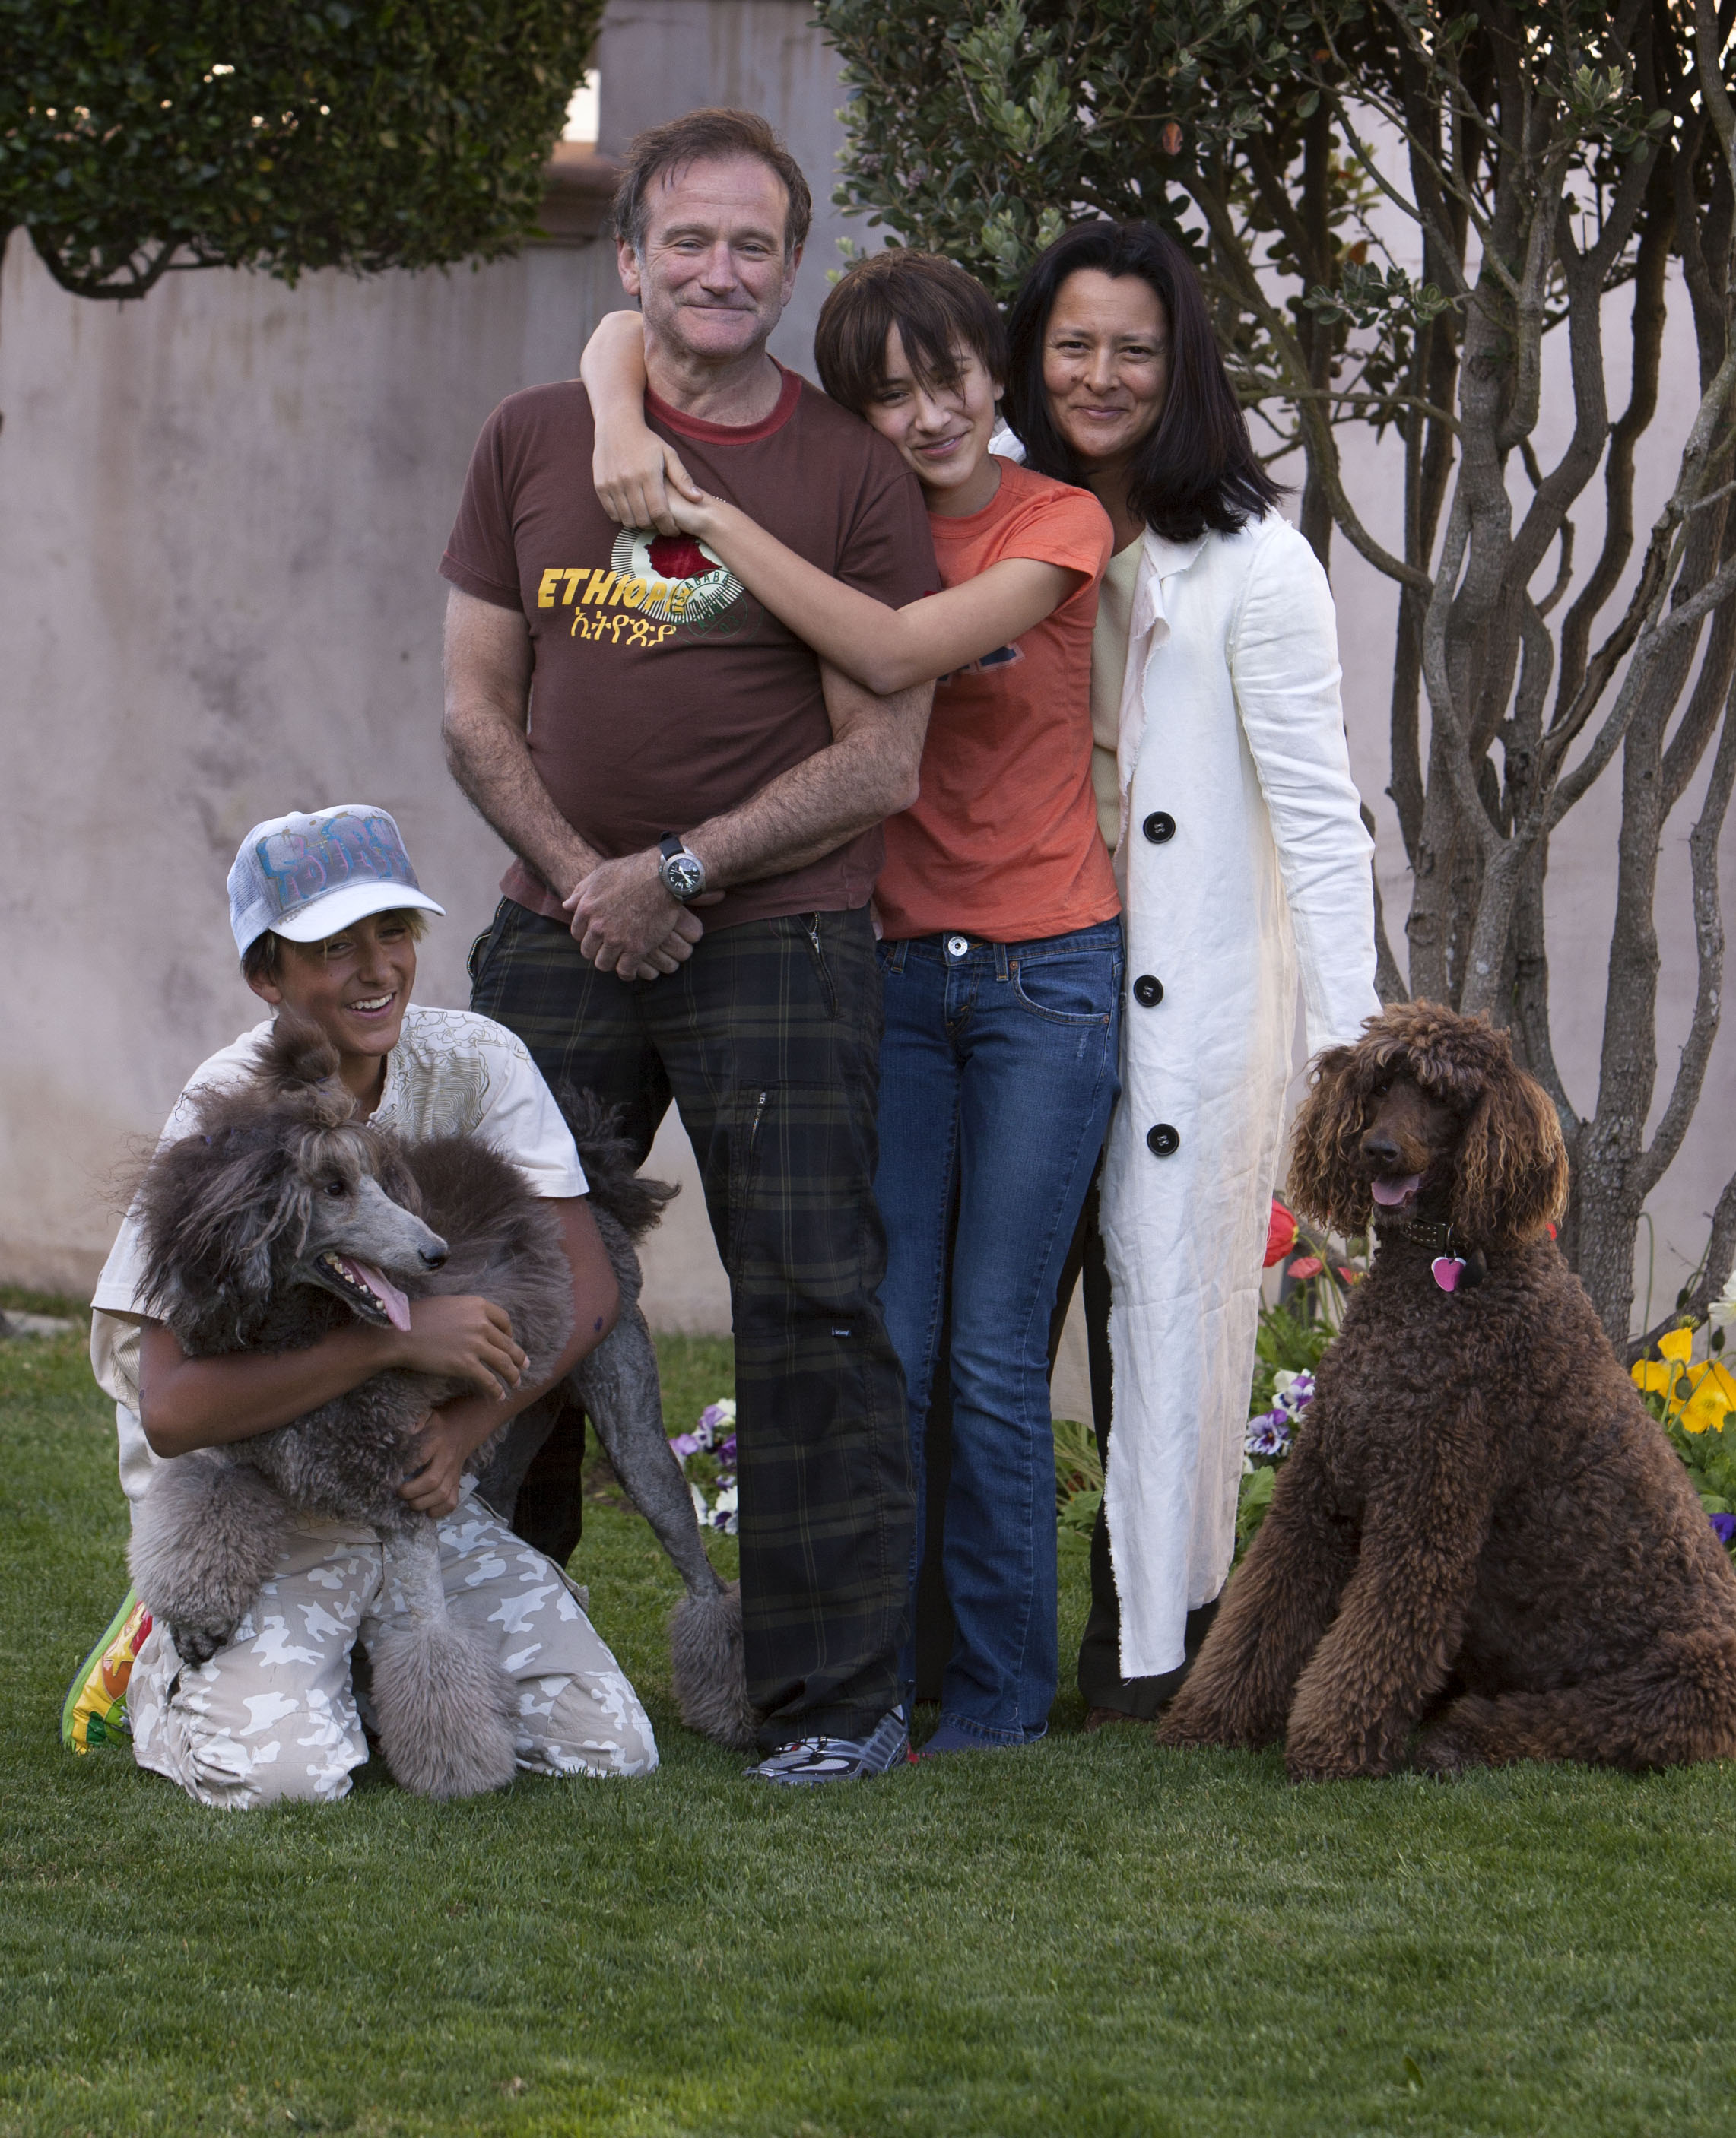 Robin Williams and his family are seen with their dogs on May 2005. From left to right: Kiwi (poodle), son Cody Williams, Robin Williams, daughter Zelda Williams, Marsha Williams and Mizu (poodle)